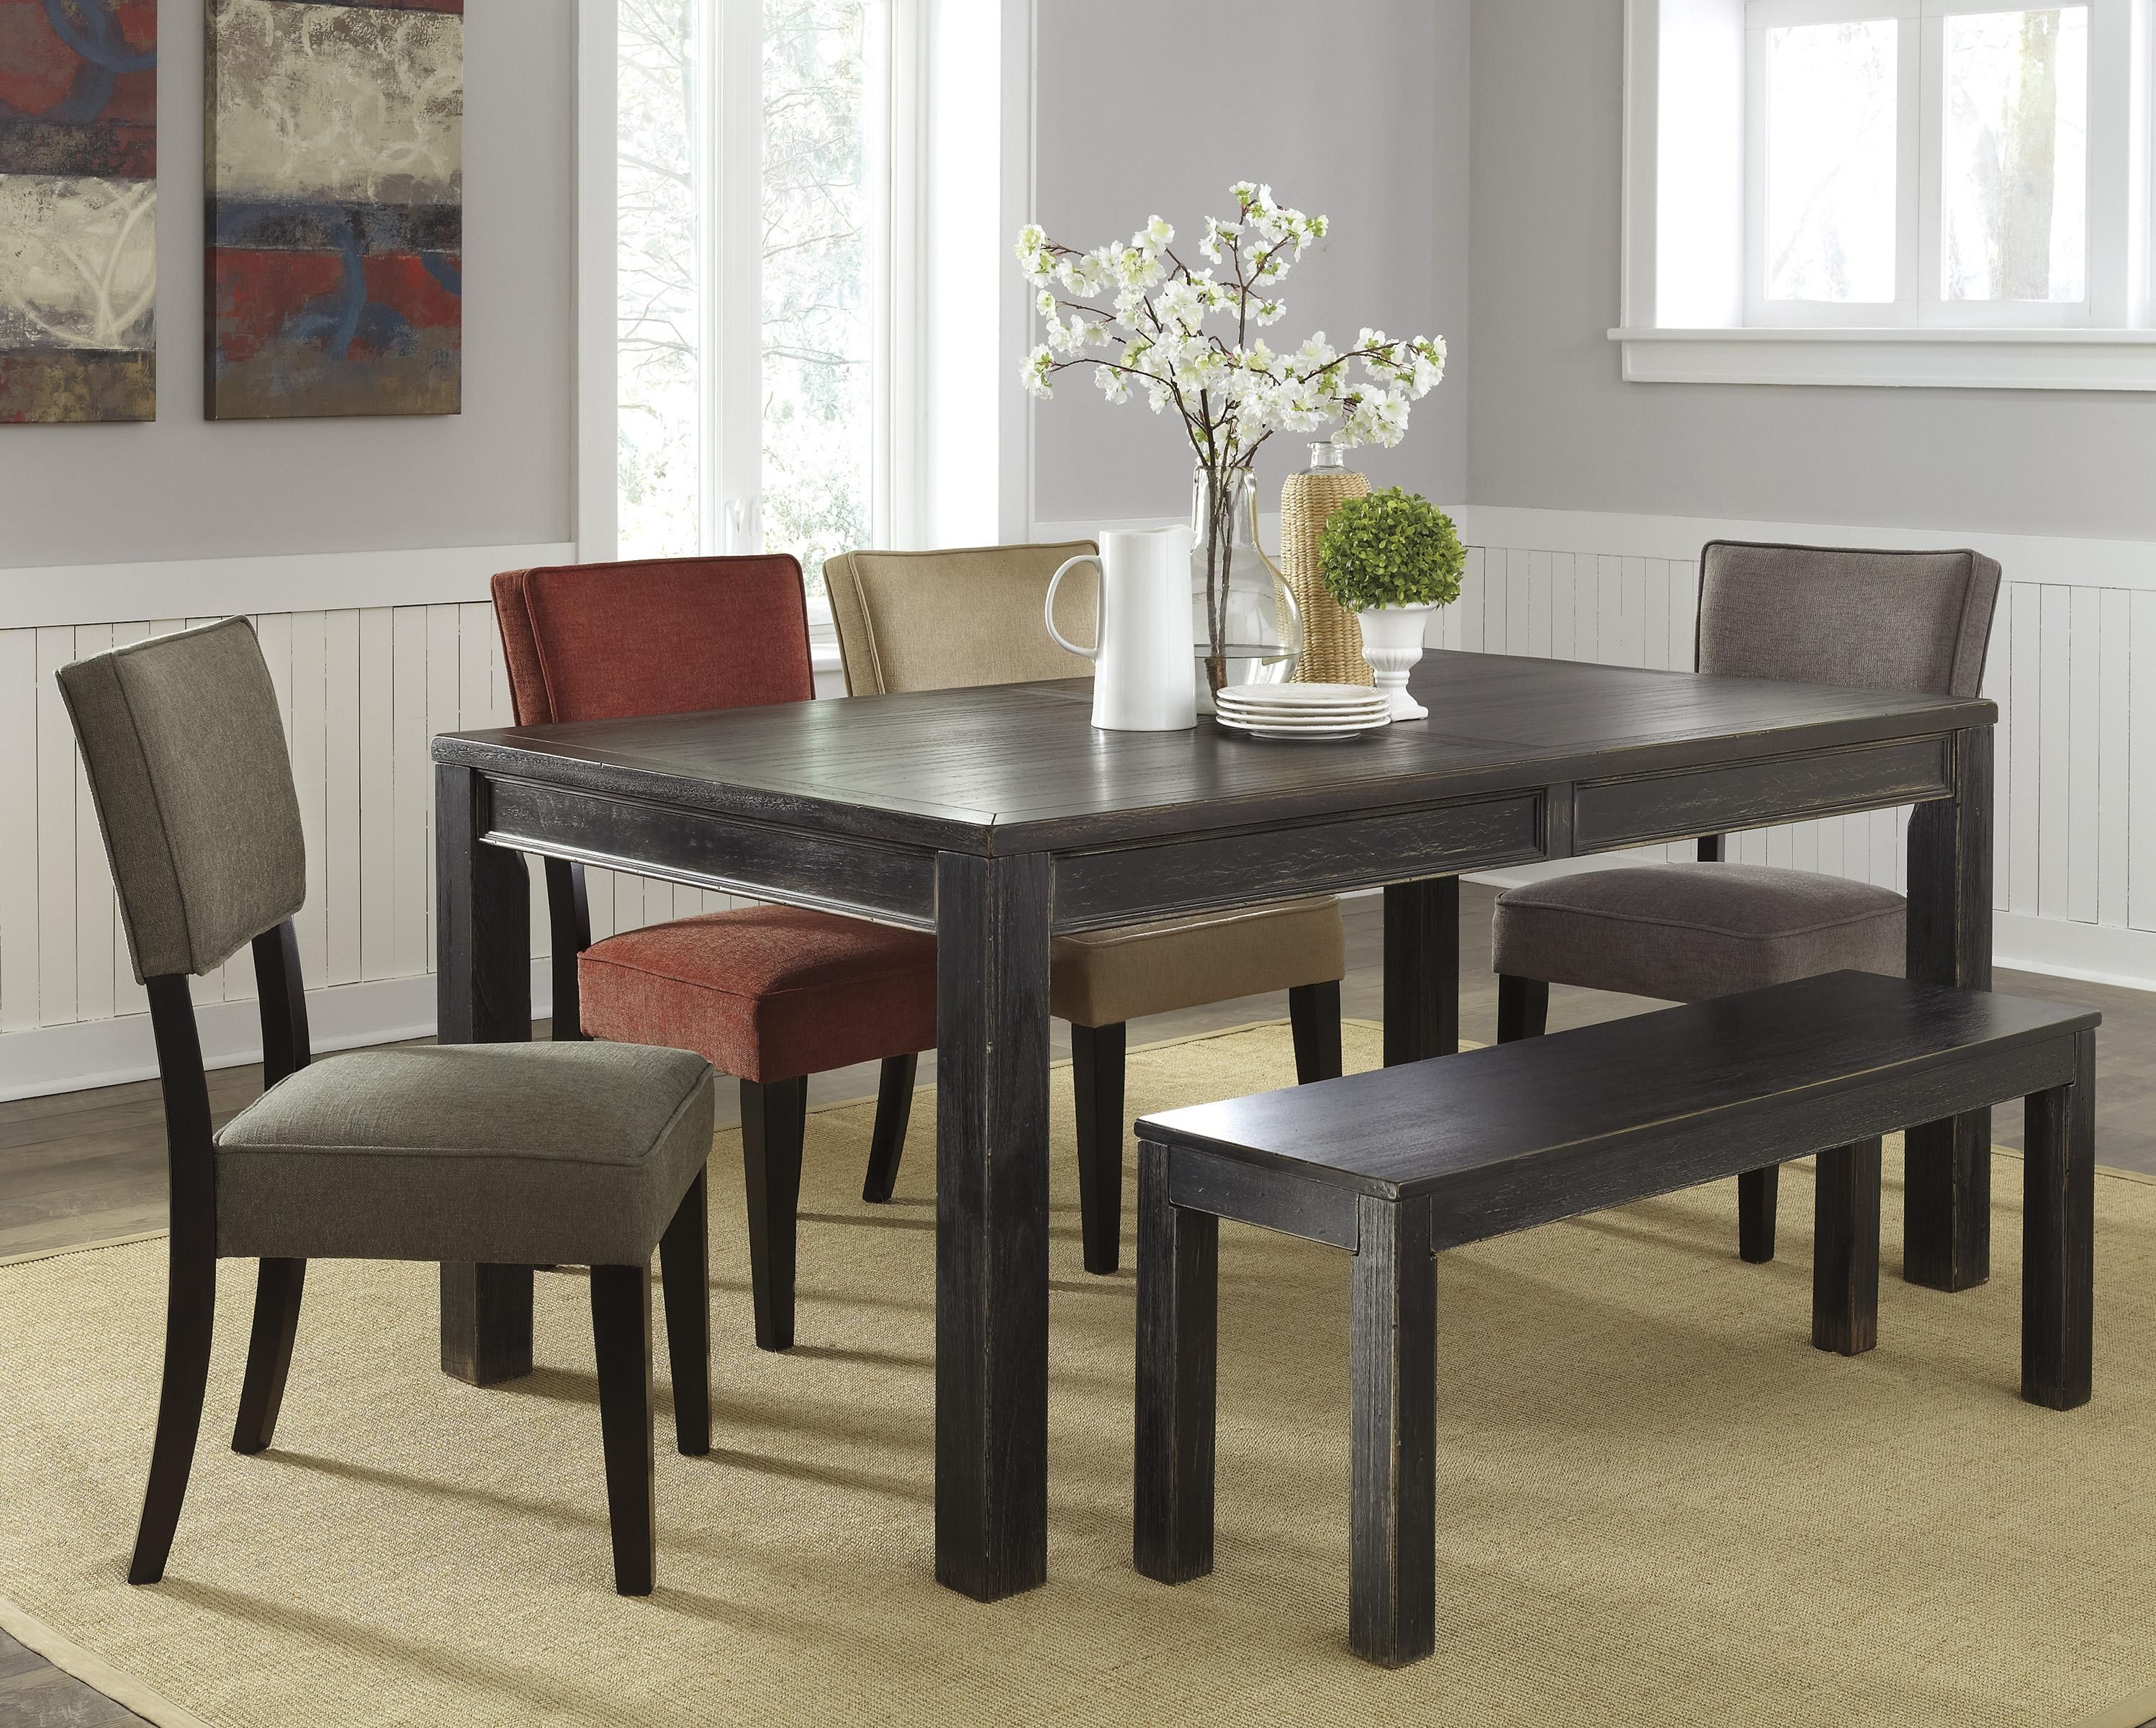 Gavelston 6 Piece Table Set With Bench By Signature Design By